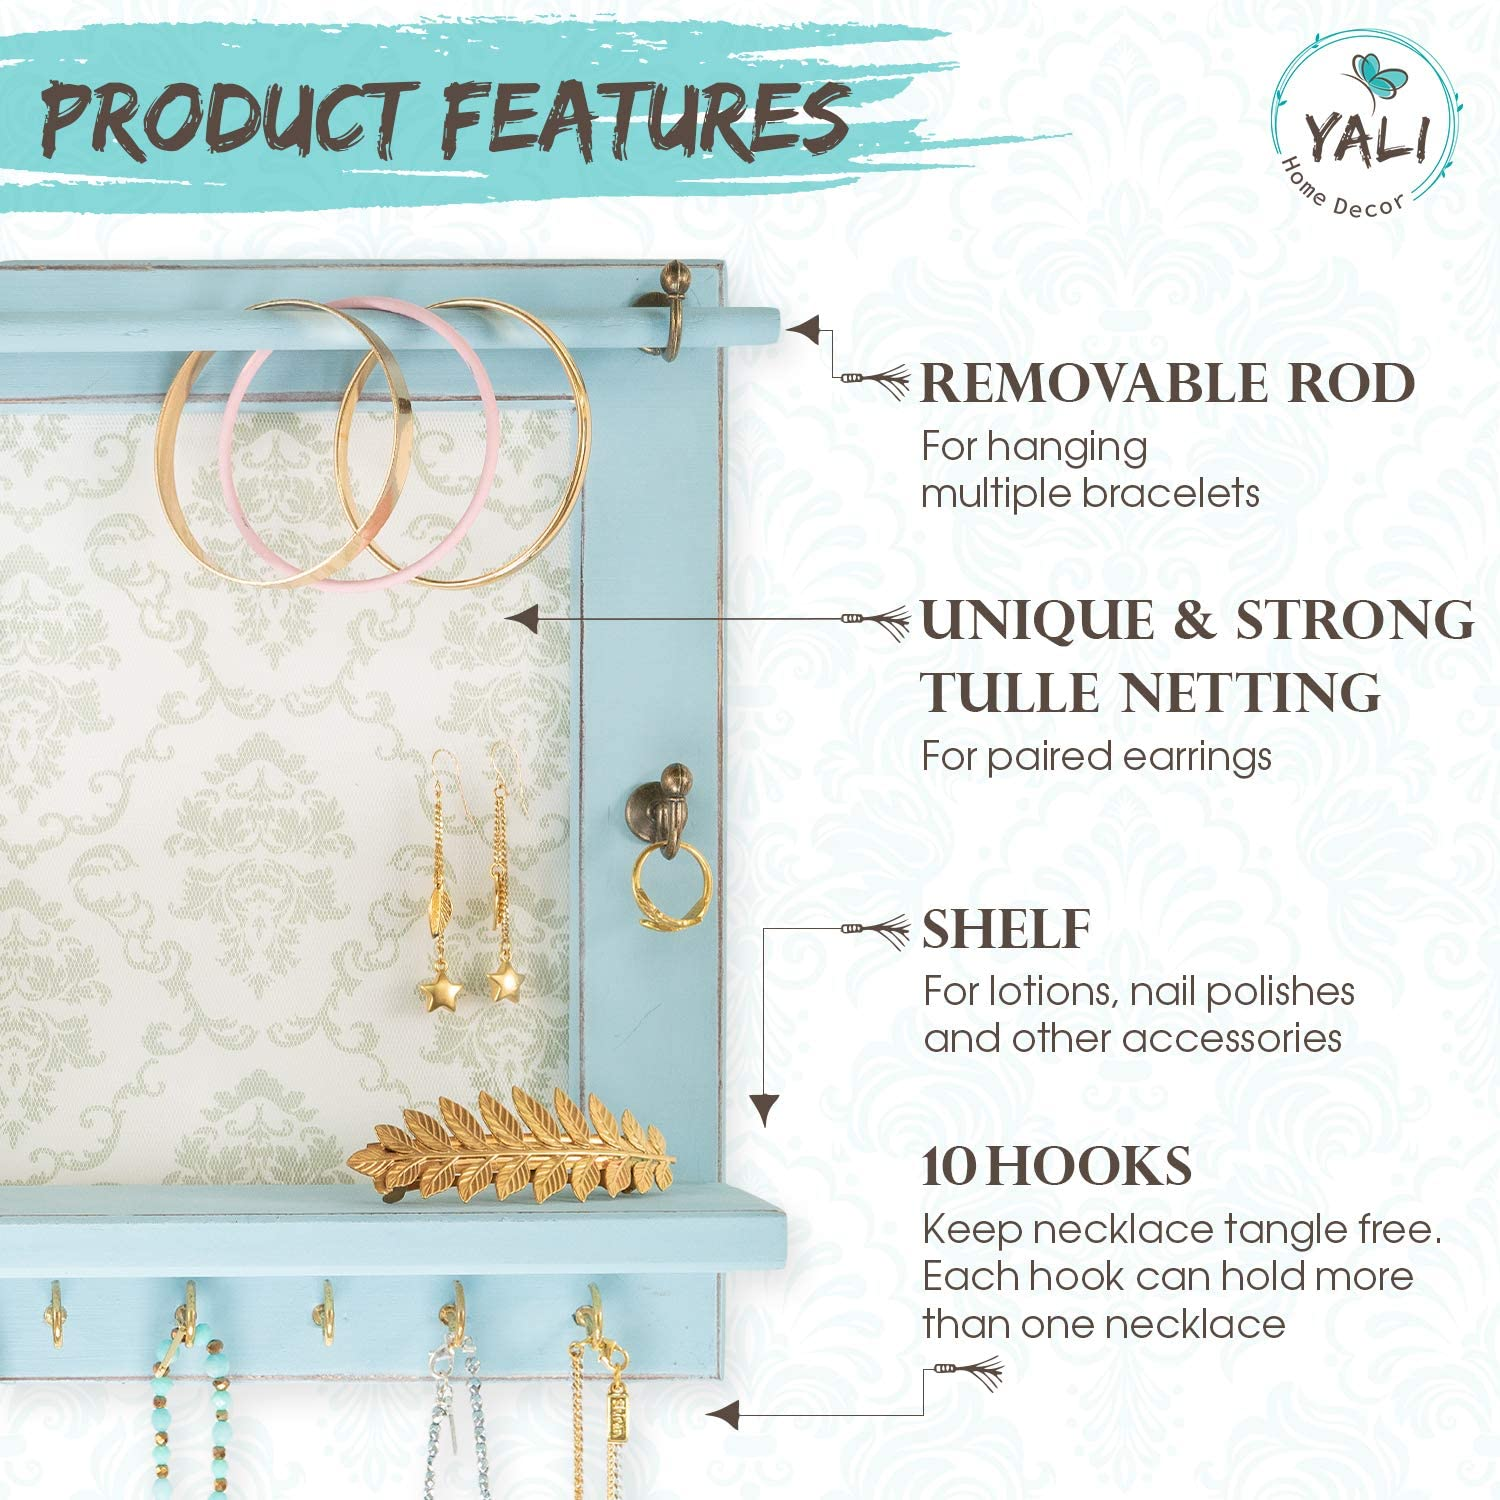 Bracelets White or Pale Blue Wall-Mounted Distressed Chic Jewelry Hanging Holder Rack for Earrings Necklaces Yali Home D/écor Rustic Jewelry Organizer and Rings with Wood Shelf